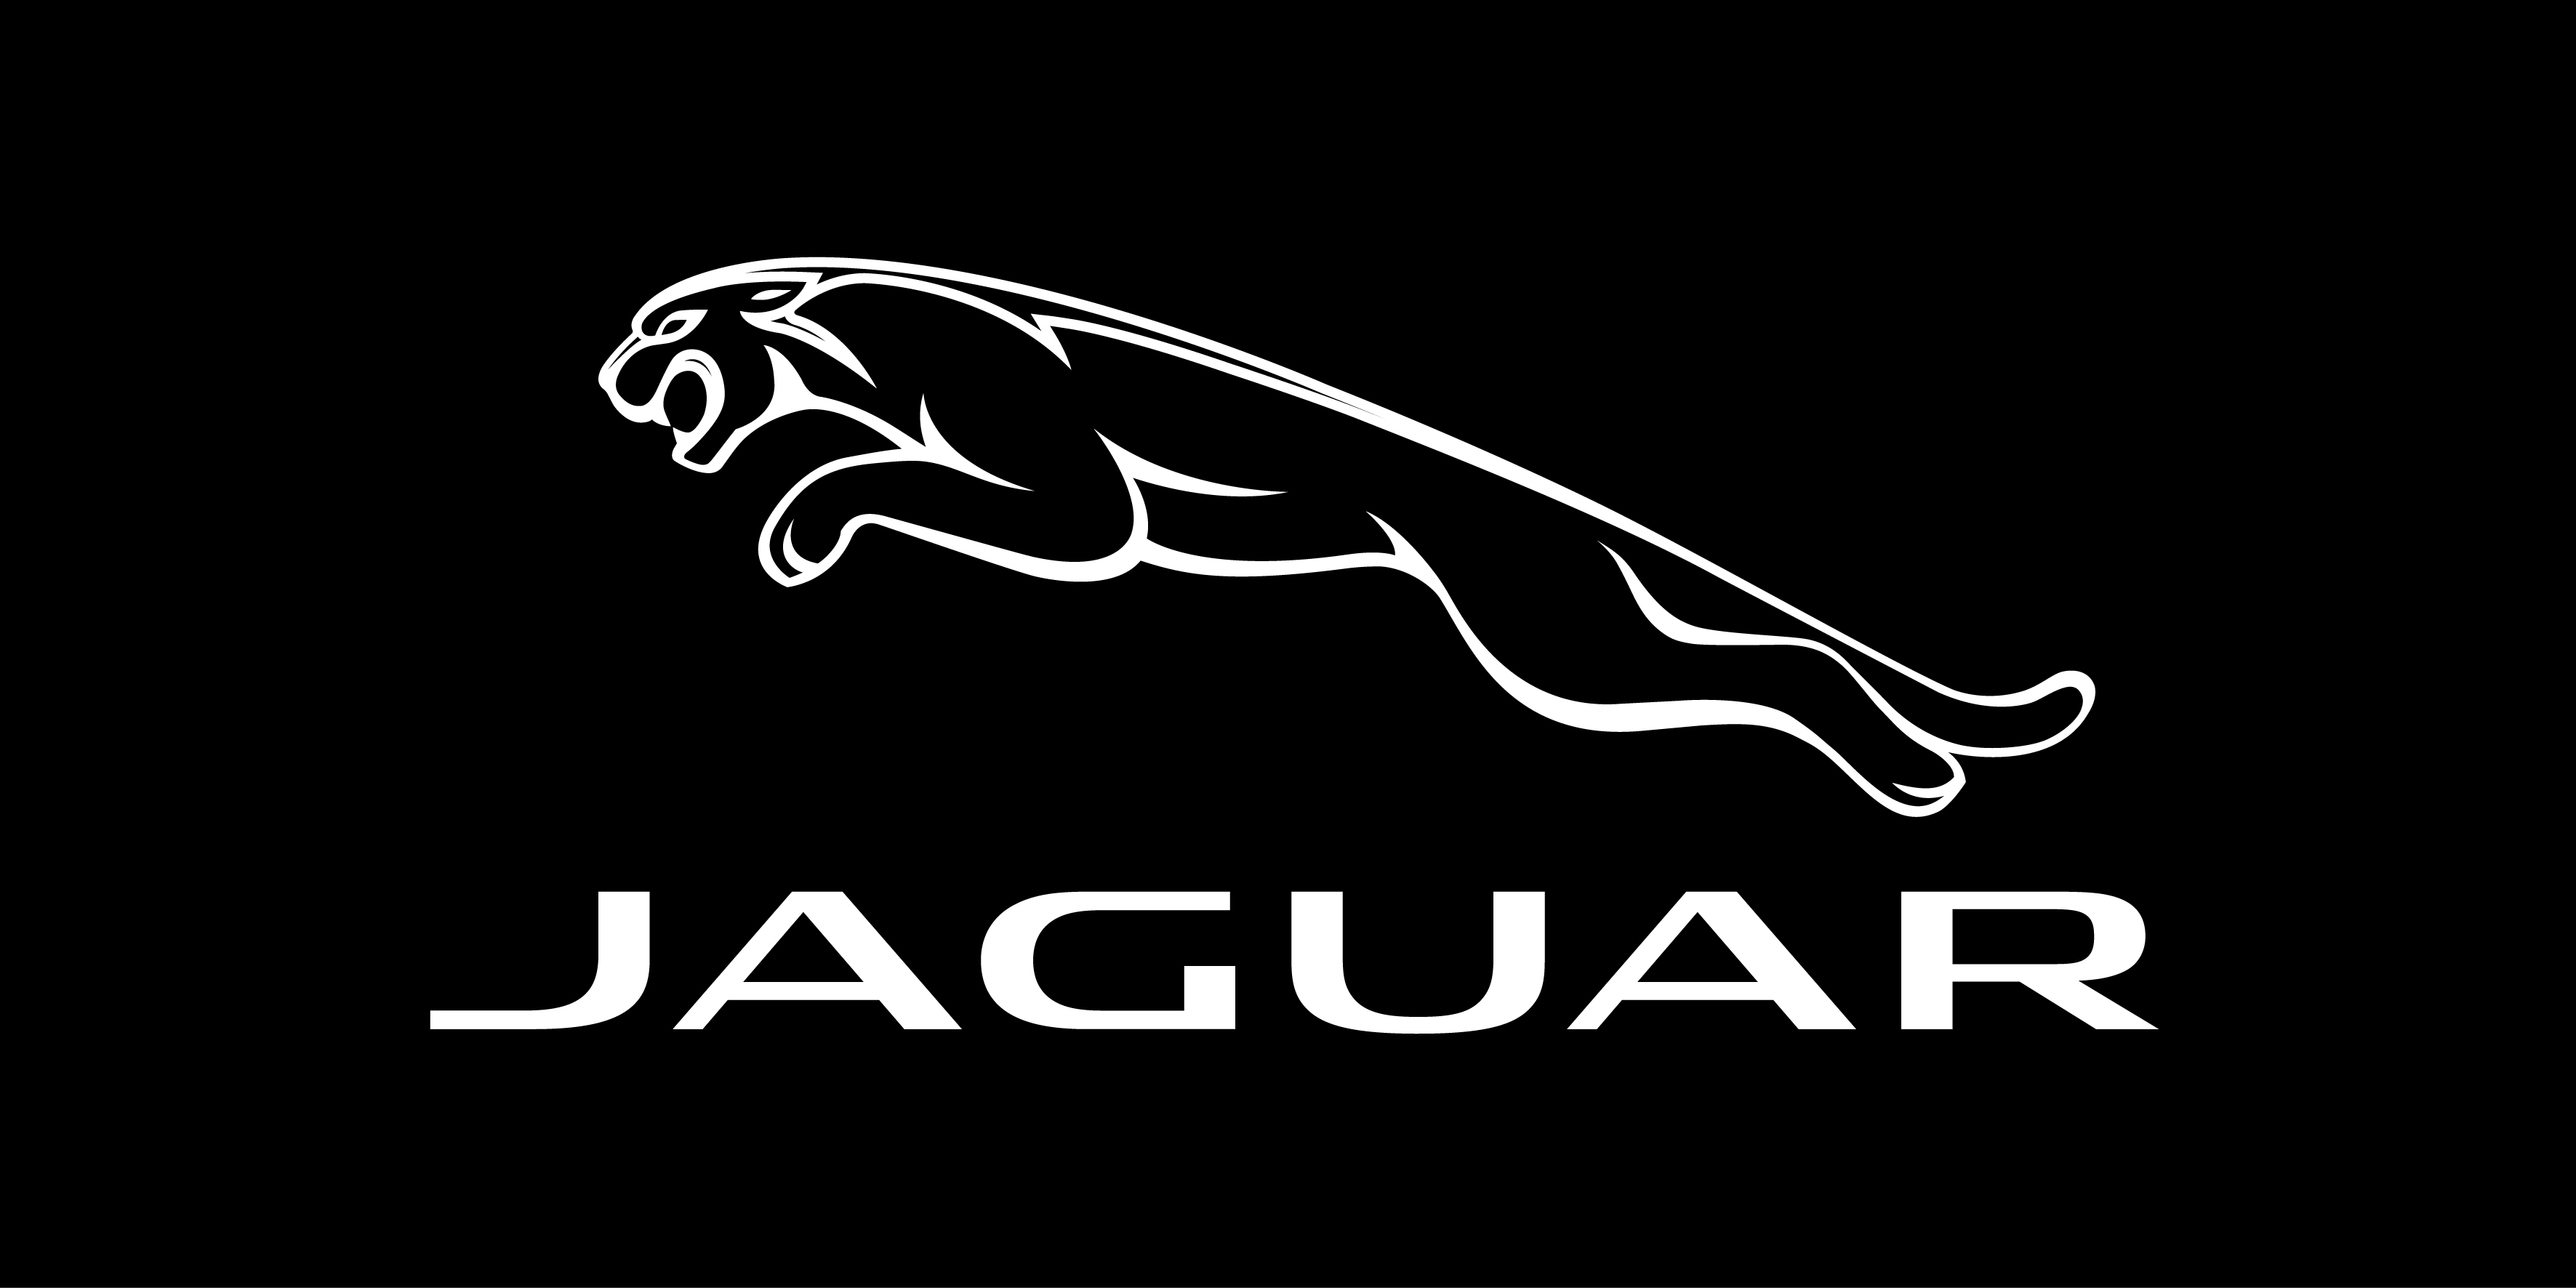 Jaguar logo jaguar car symbol meaning and history car brand names jaguar emblem biocorpaavc Gallery